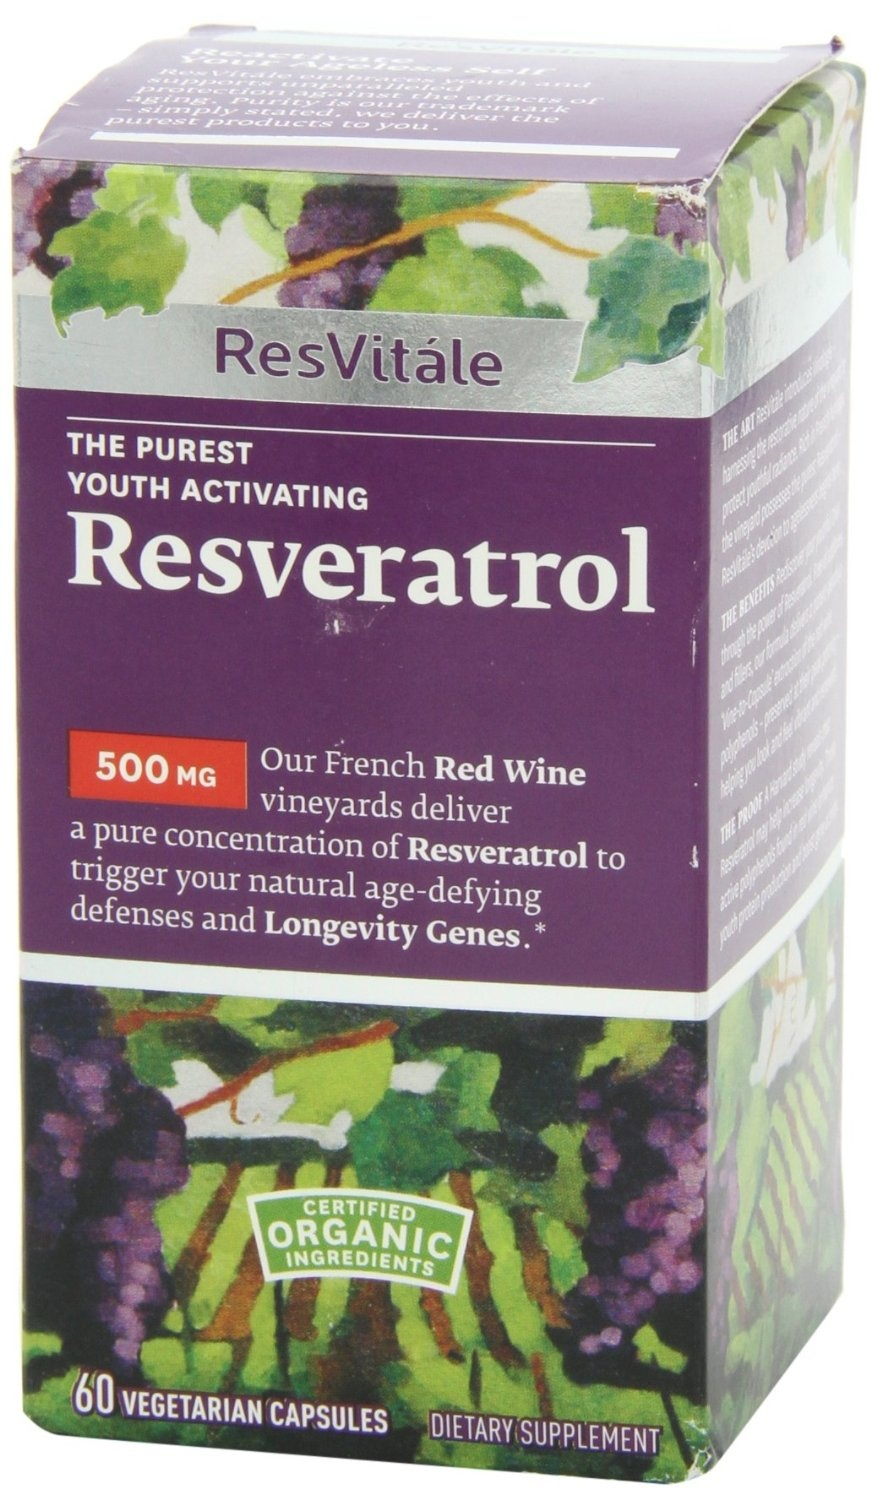 Resvitale Resveratrol 500mg 60capsules By Resvitale Shop Online